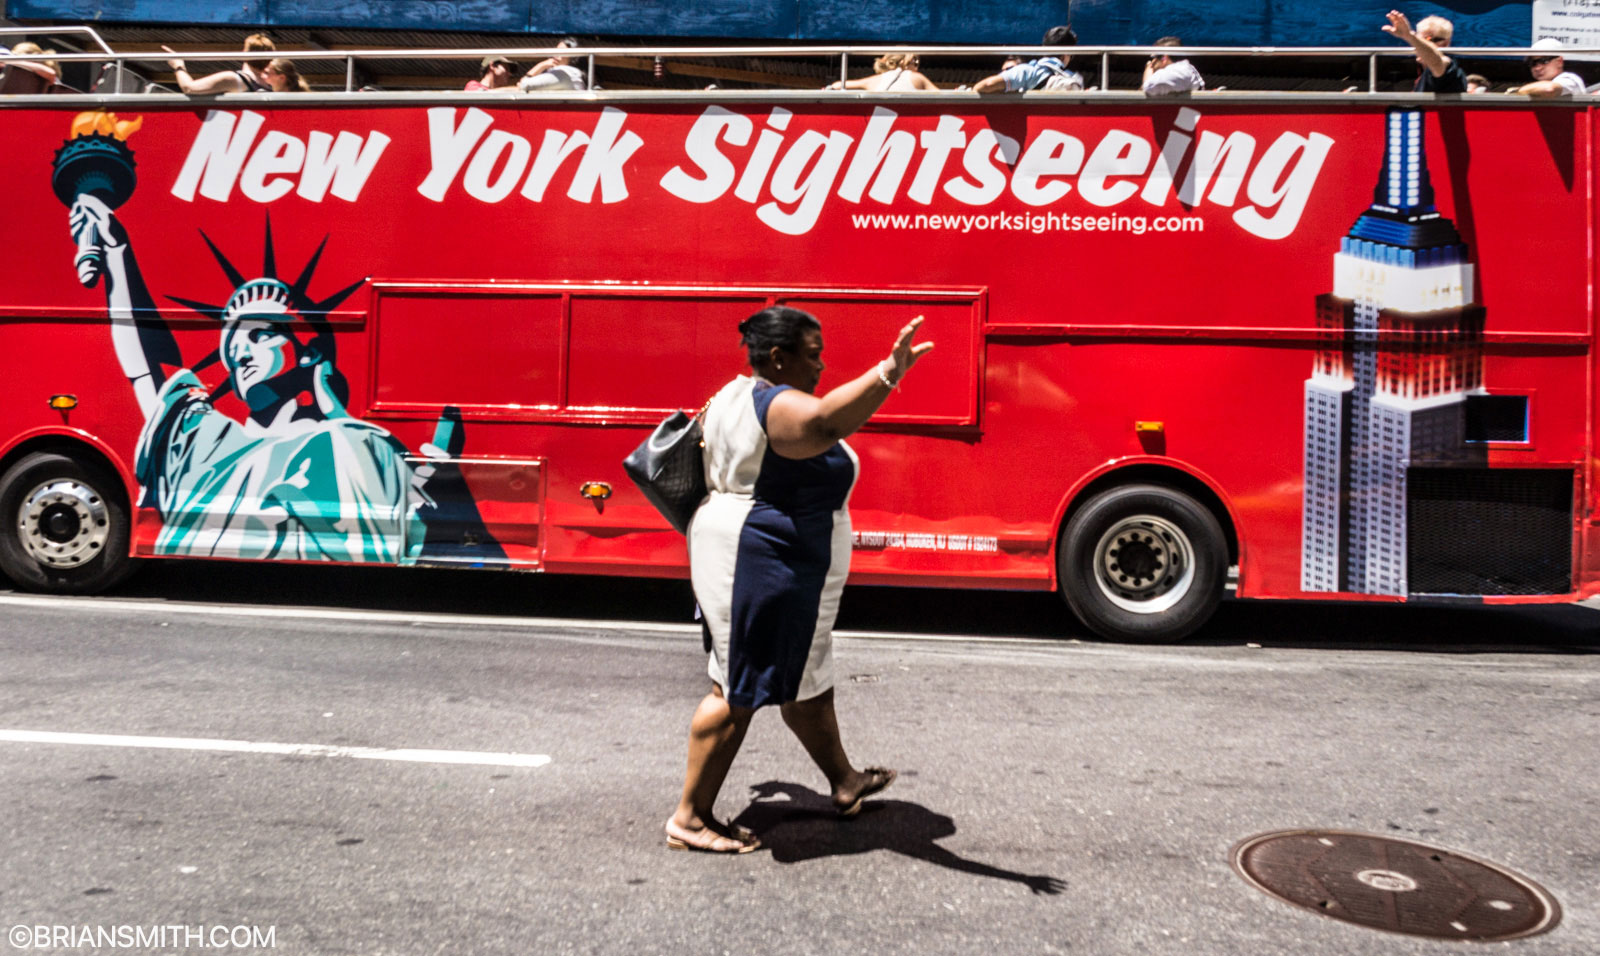 New york street photography with Zeiss Touit 12mm F2.8